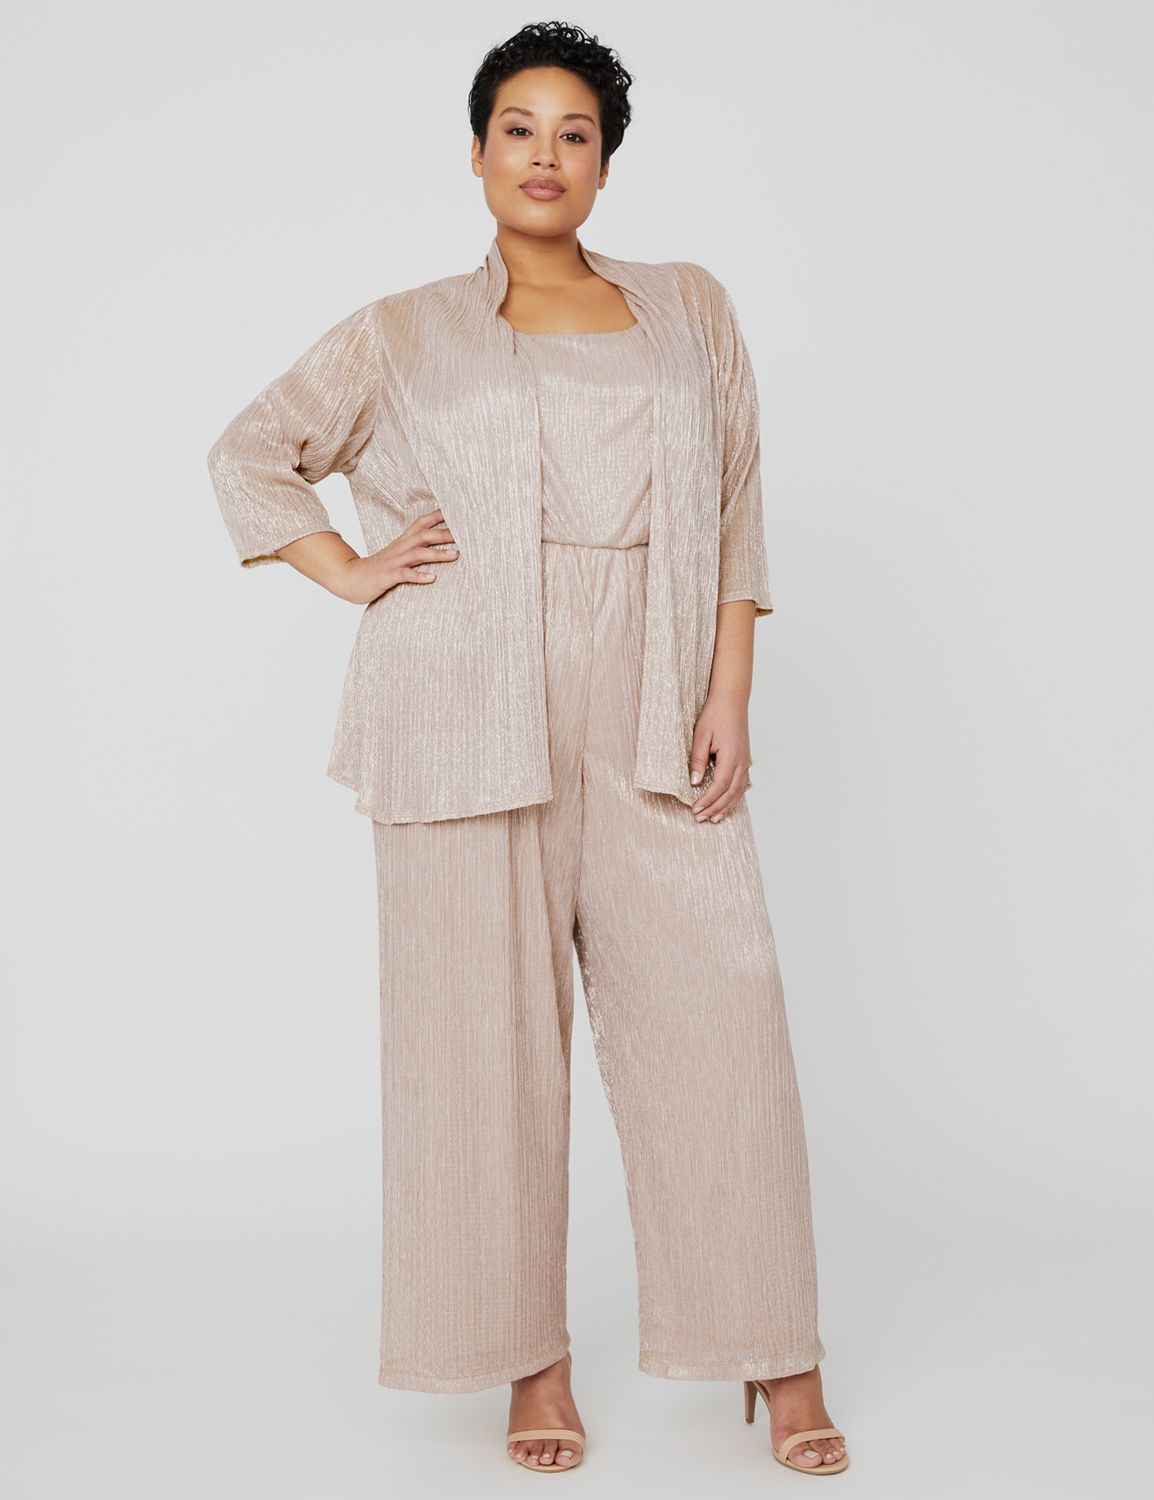 Shimmer Jumpsuit with Jacket 1090989 Jumpsuit with Jacket (94982 MP-300099360